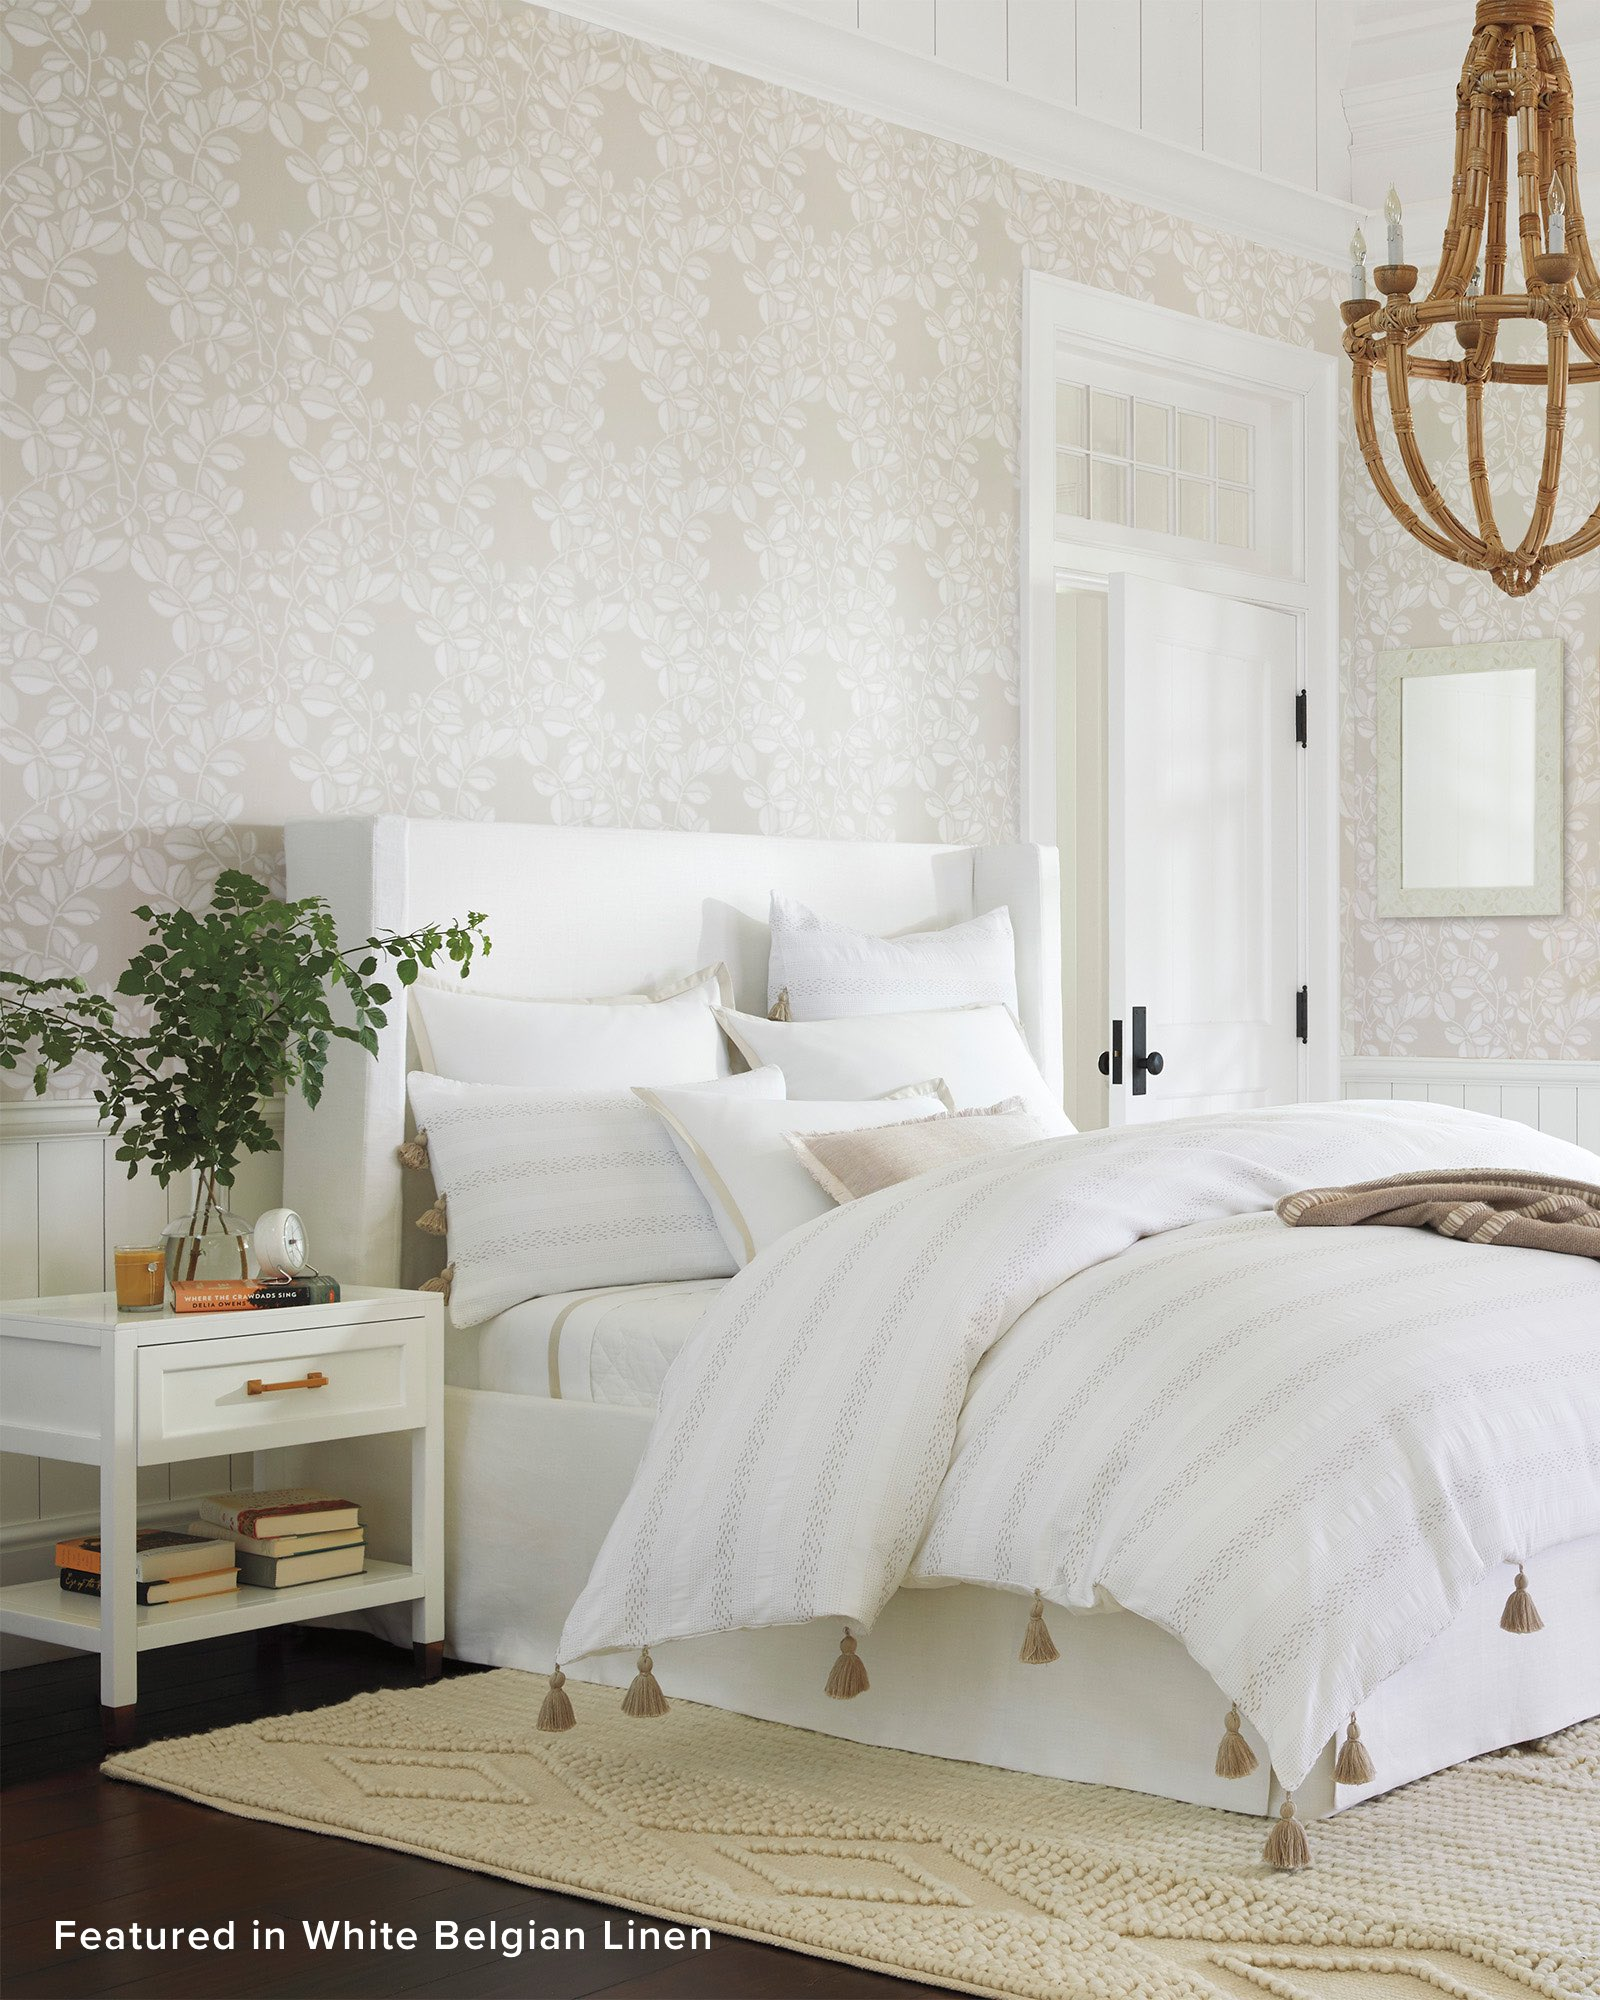 Tall Broderick Slipcovered Bed - Serena & Lily